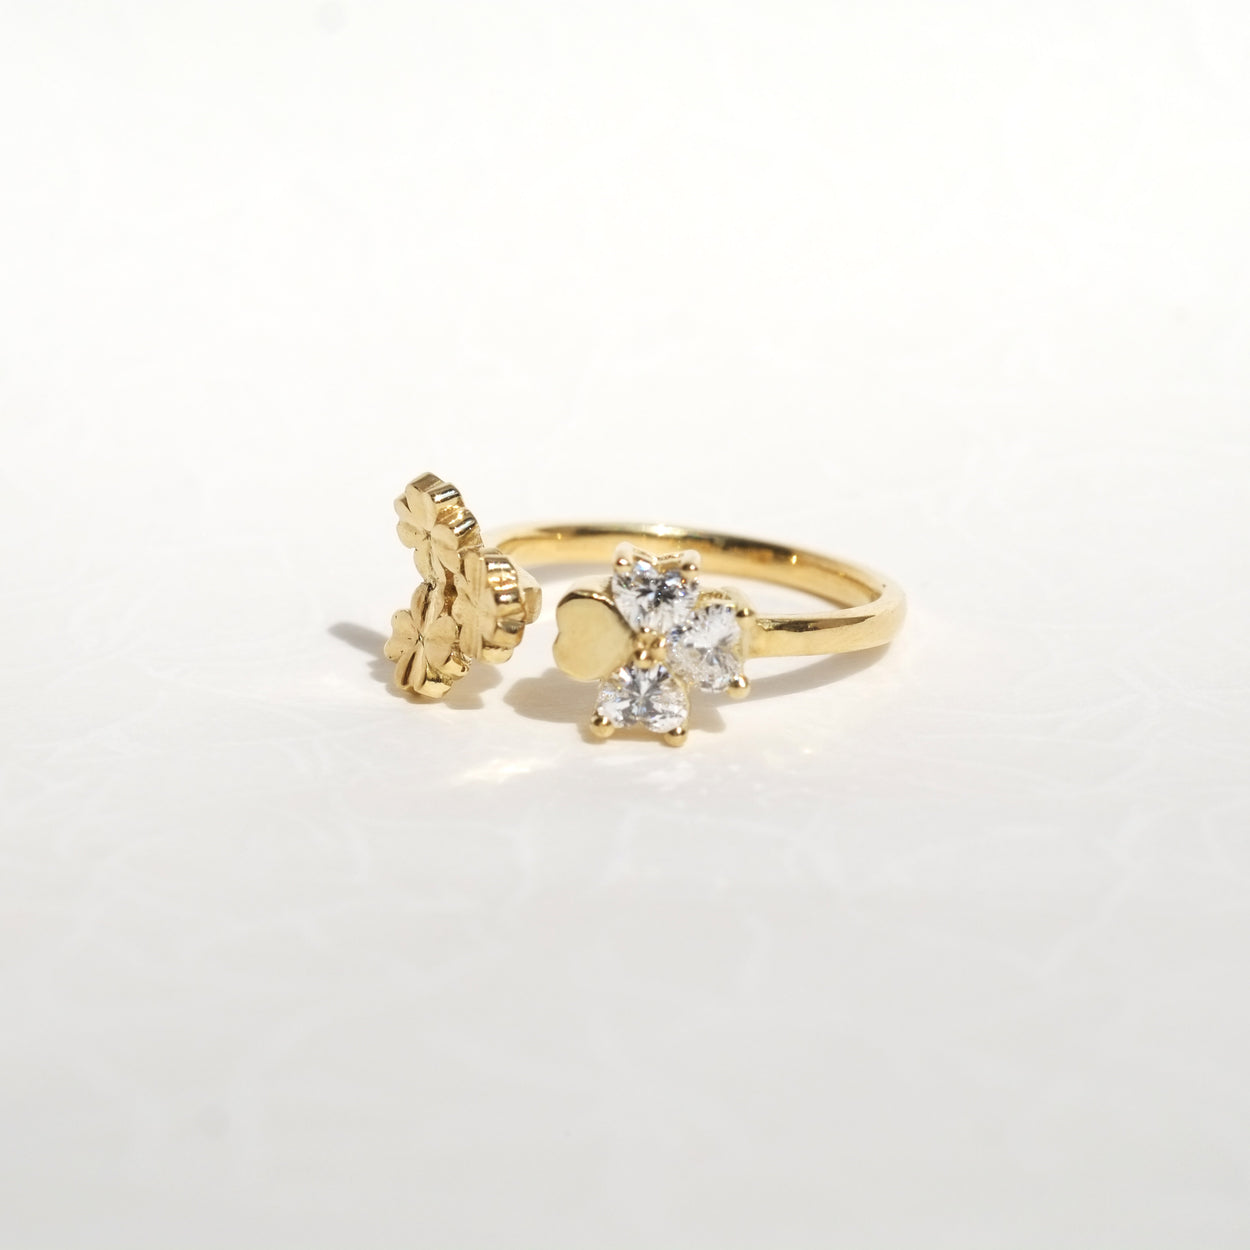 Clover Diamond Ring - Lucky in Love